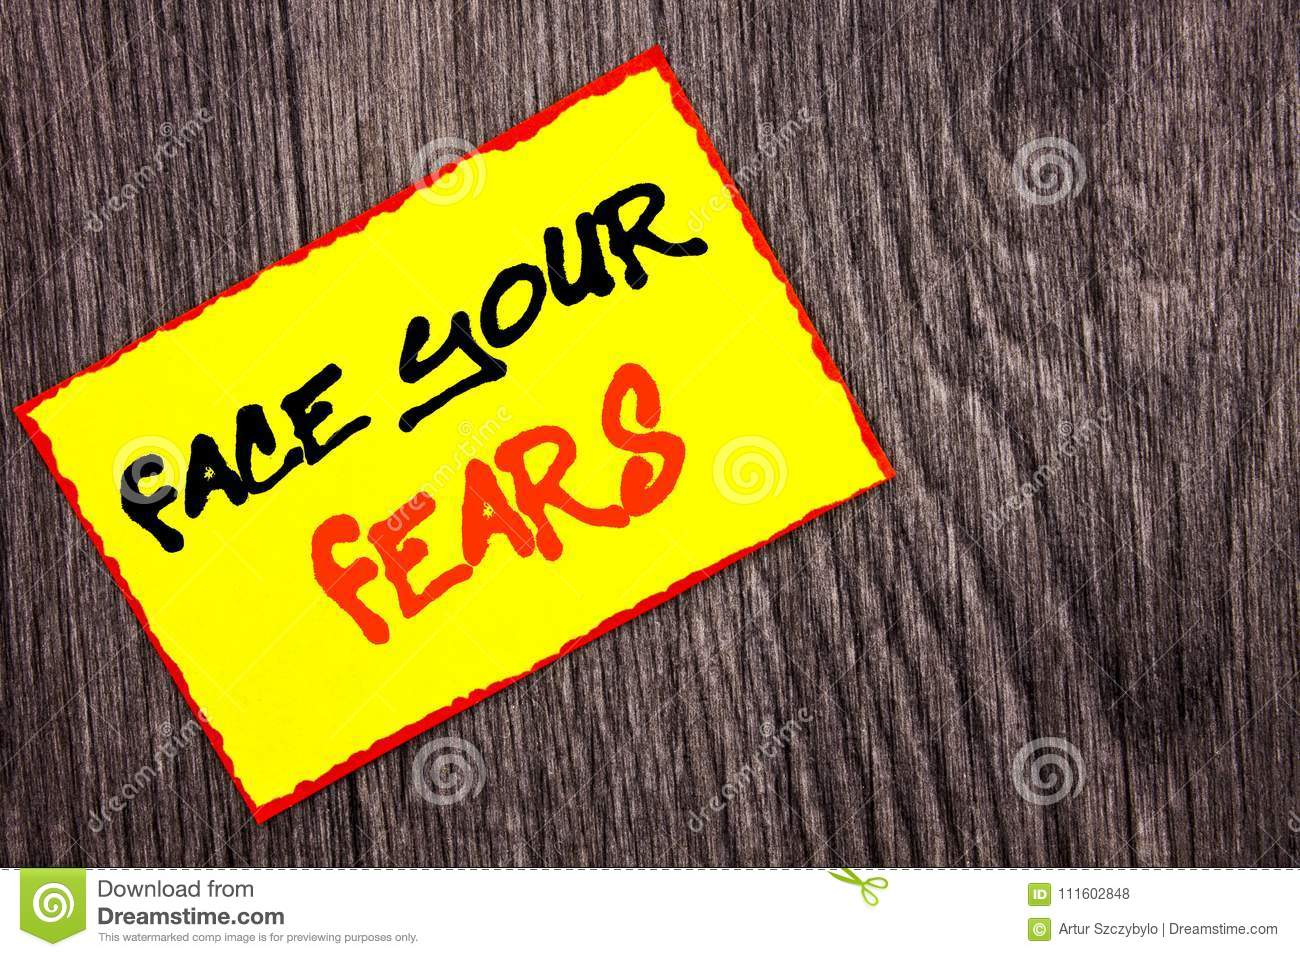 Conceptual hand writing text showing Face Your Fears. Concept meaning Challenge Fear Fourage Confidence Brave Bravery written on Y